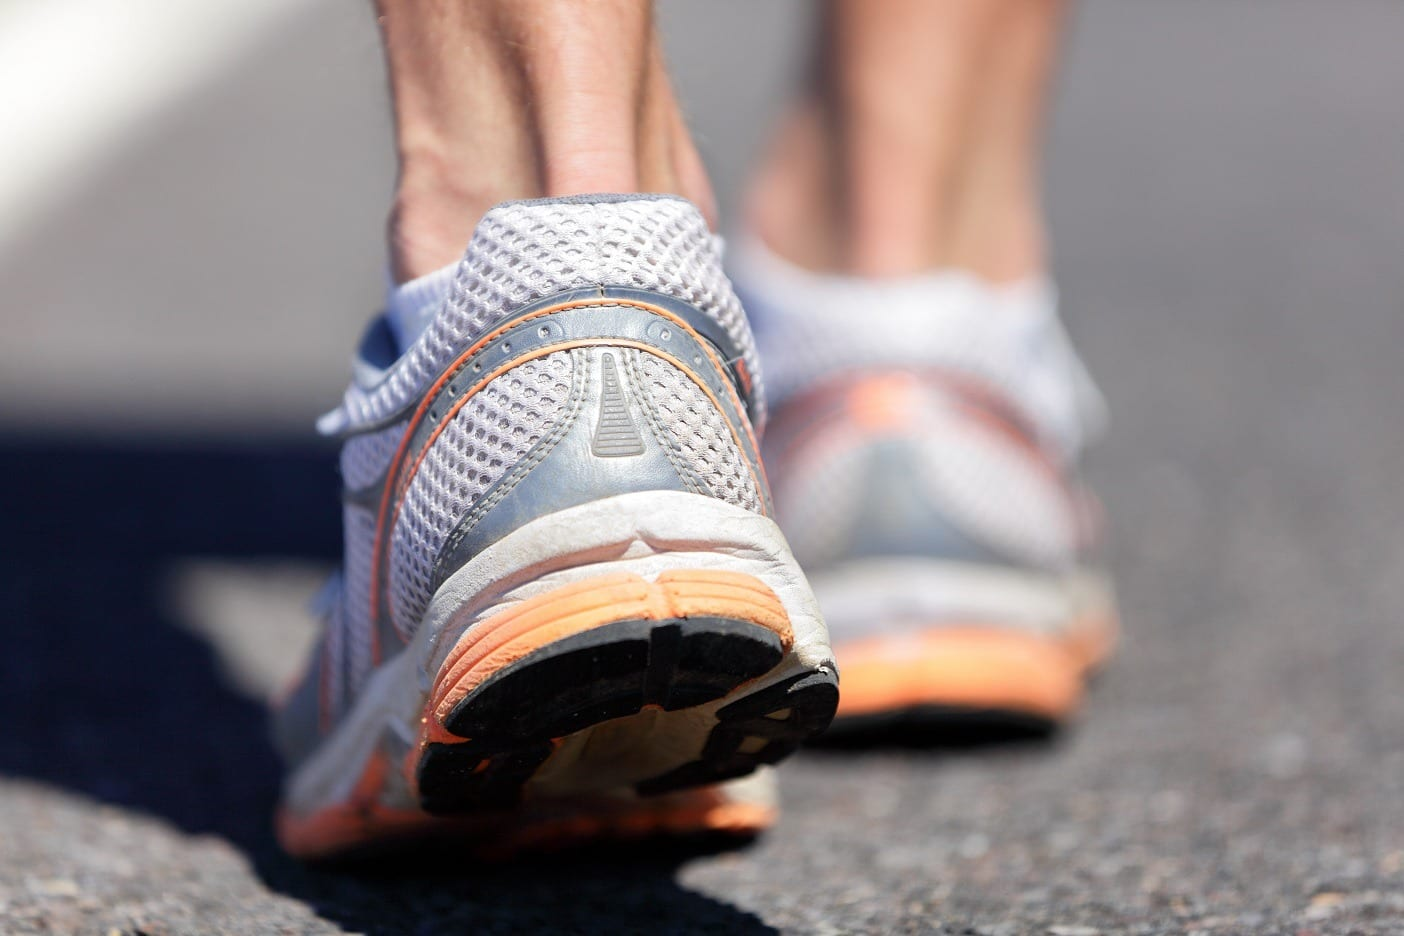 plantar fasciitis often hits runners more than to most average people.